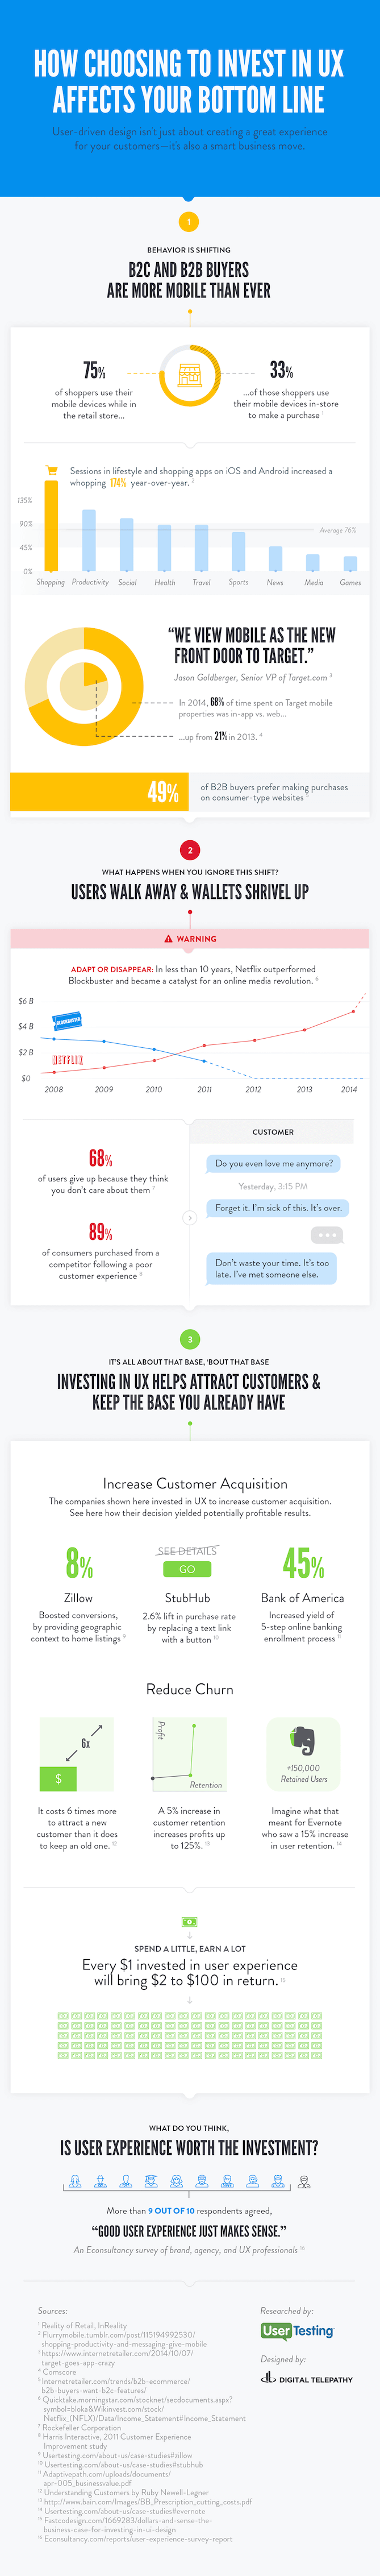 infographic below from UserTesting